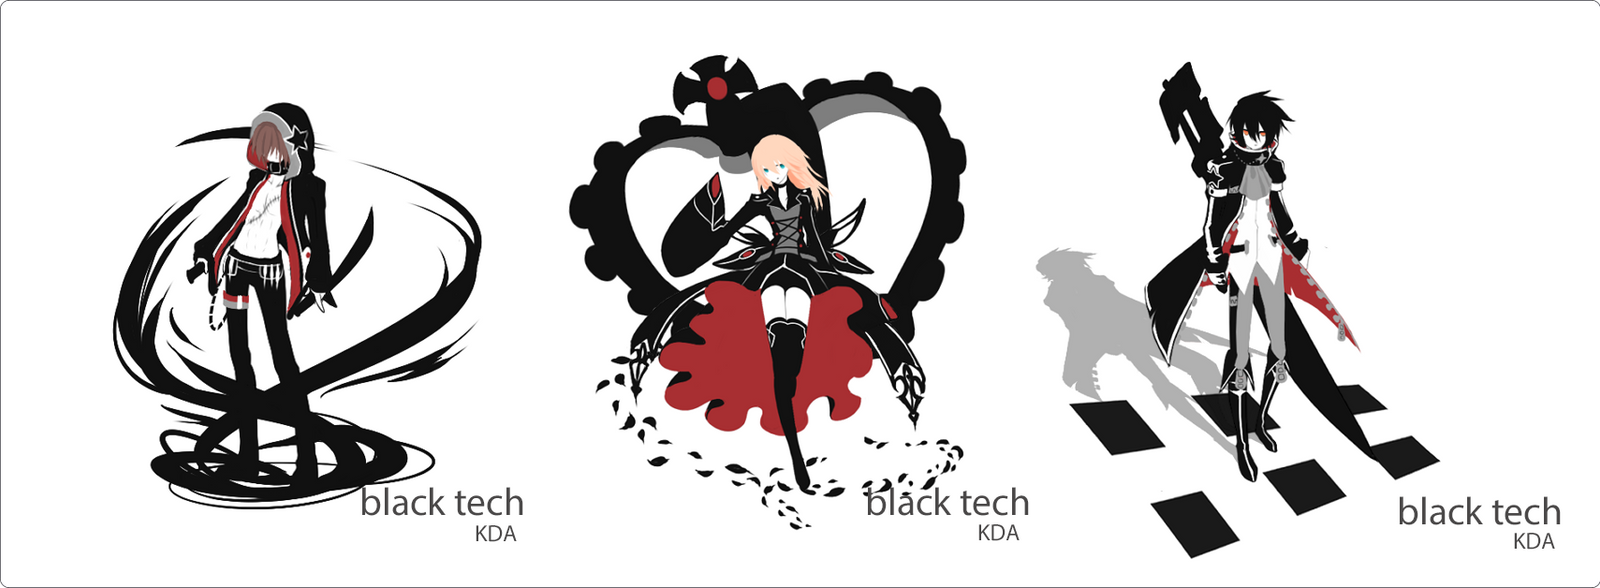 Black tech: Batch 1 references by Toeiya